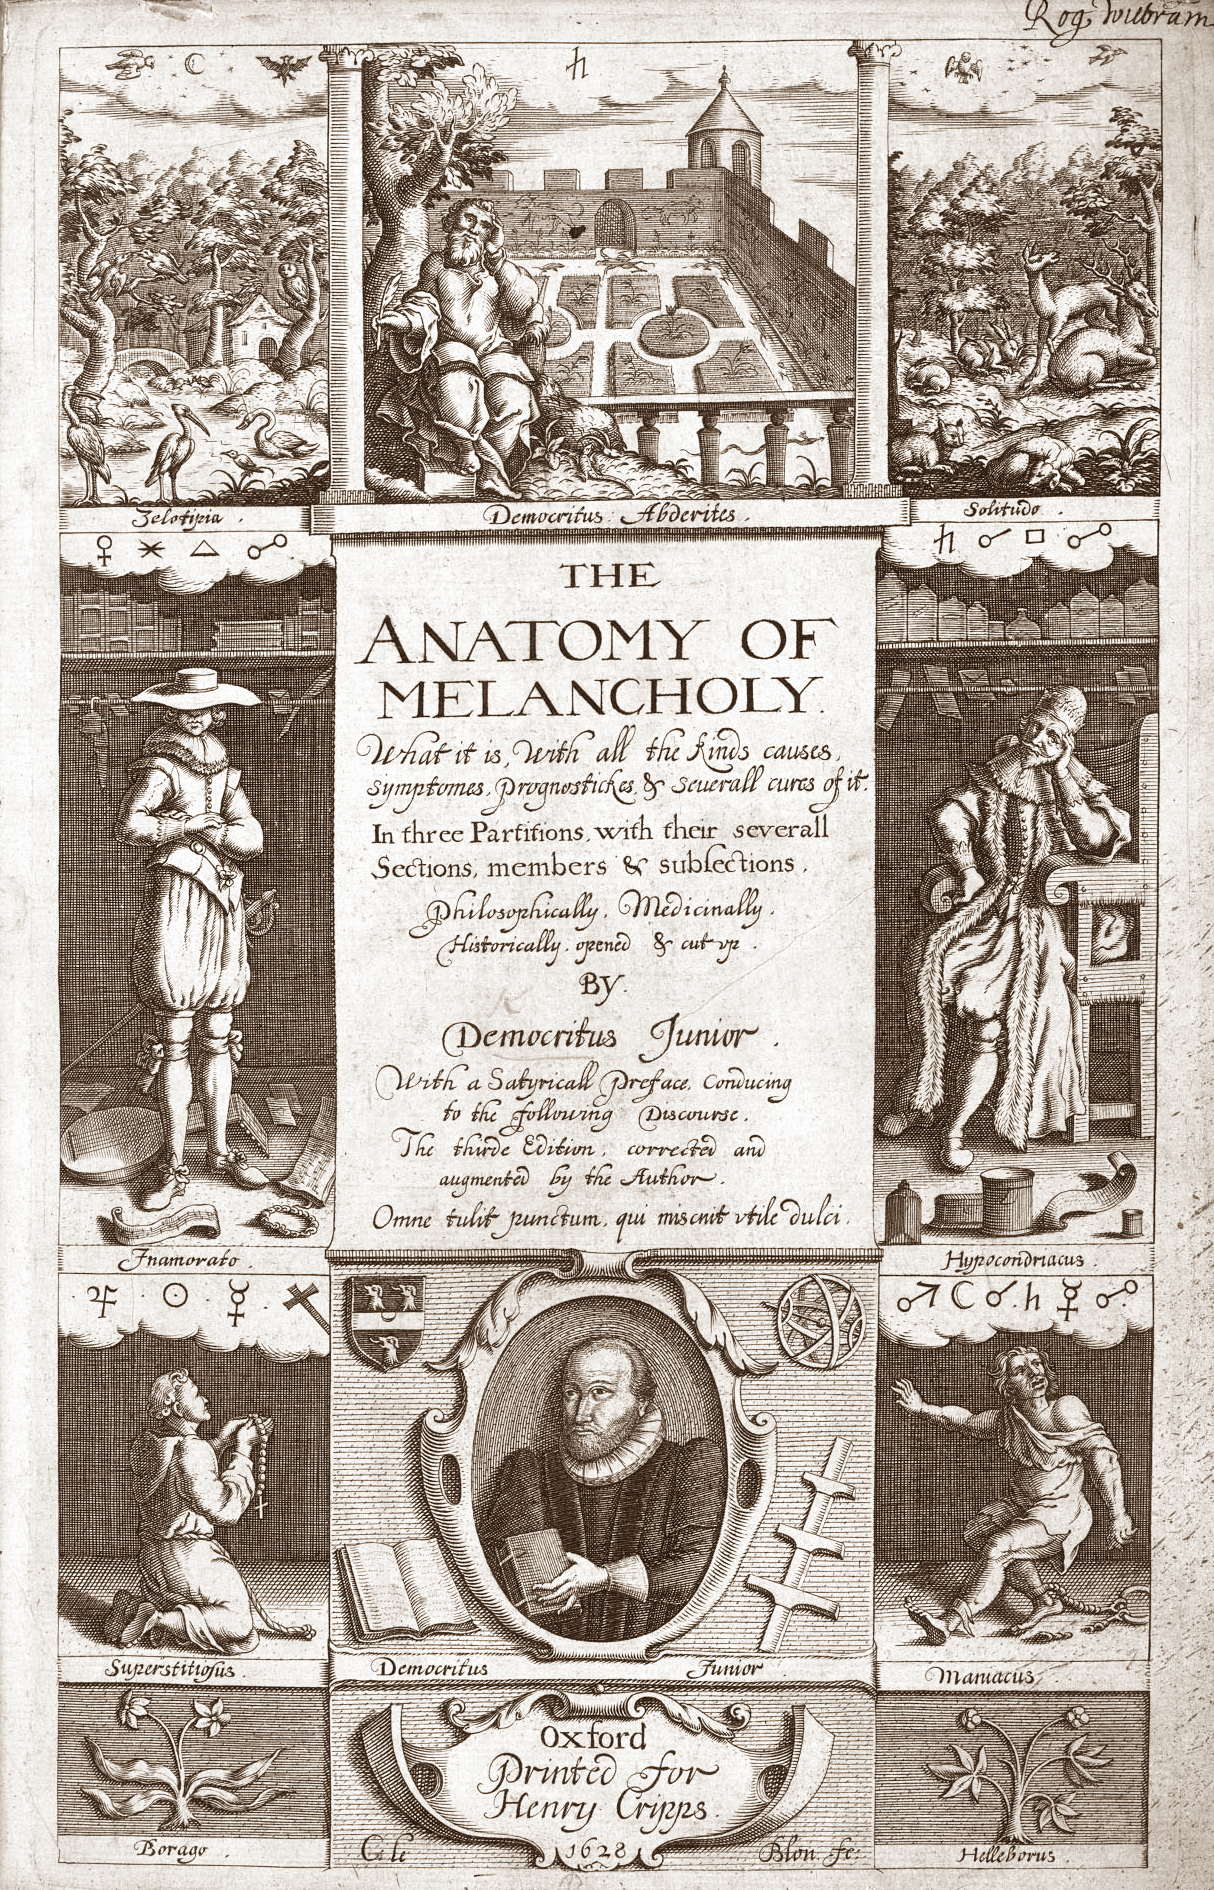 Frontispiece for the 1638 edition of The Anato...